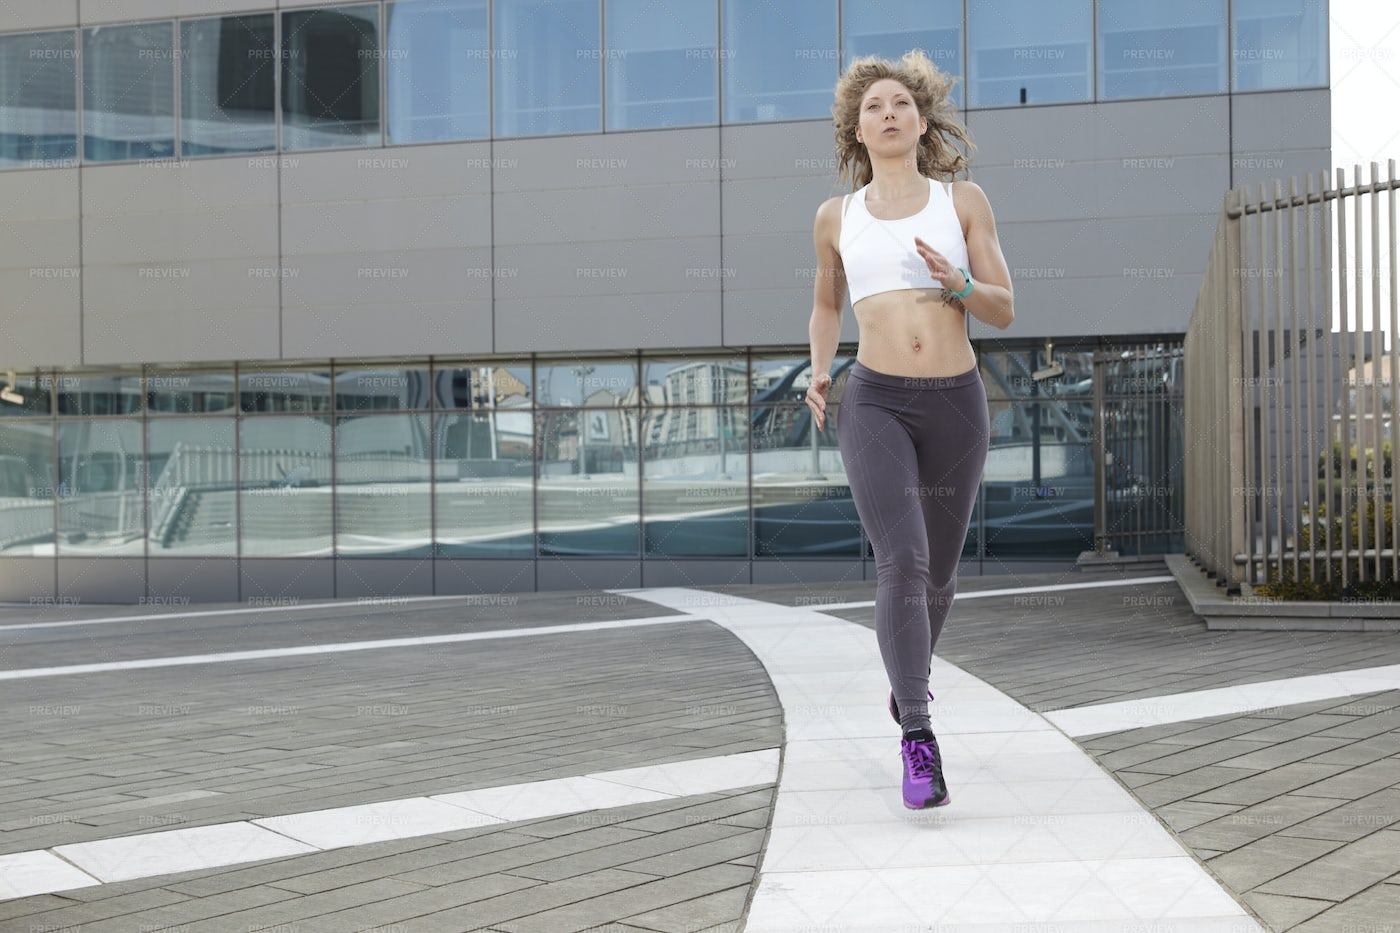 Female Running In The City: Stock Photos